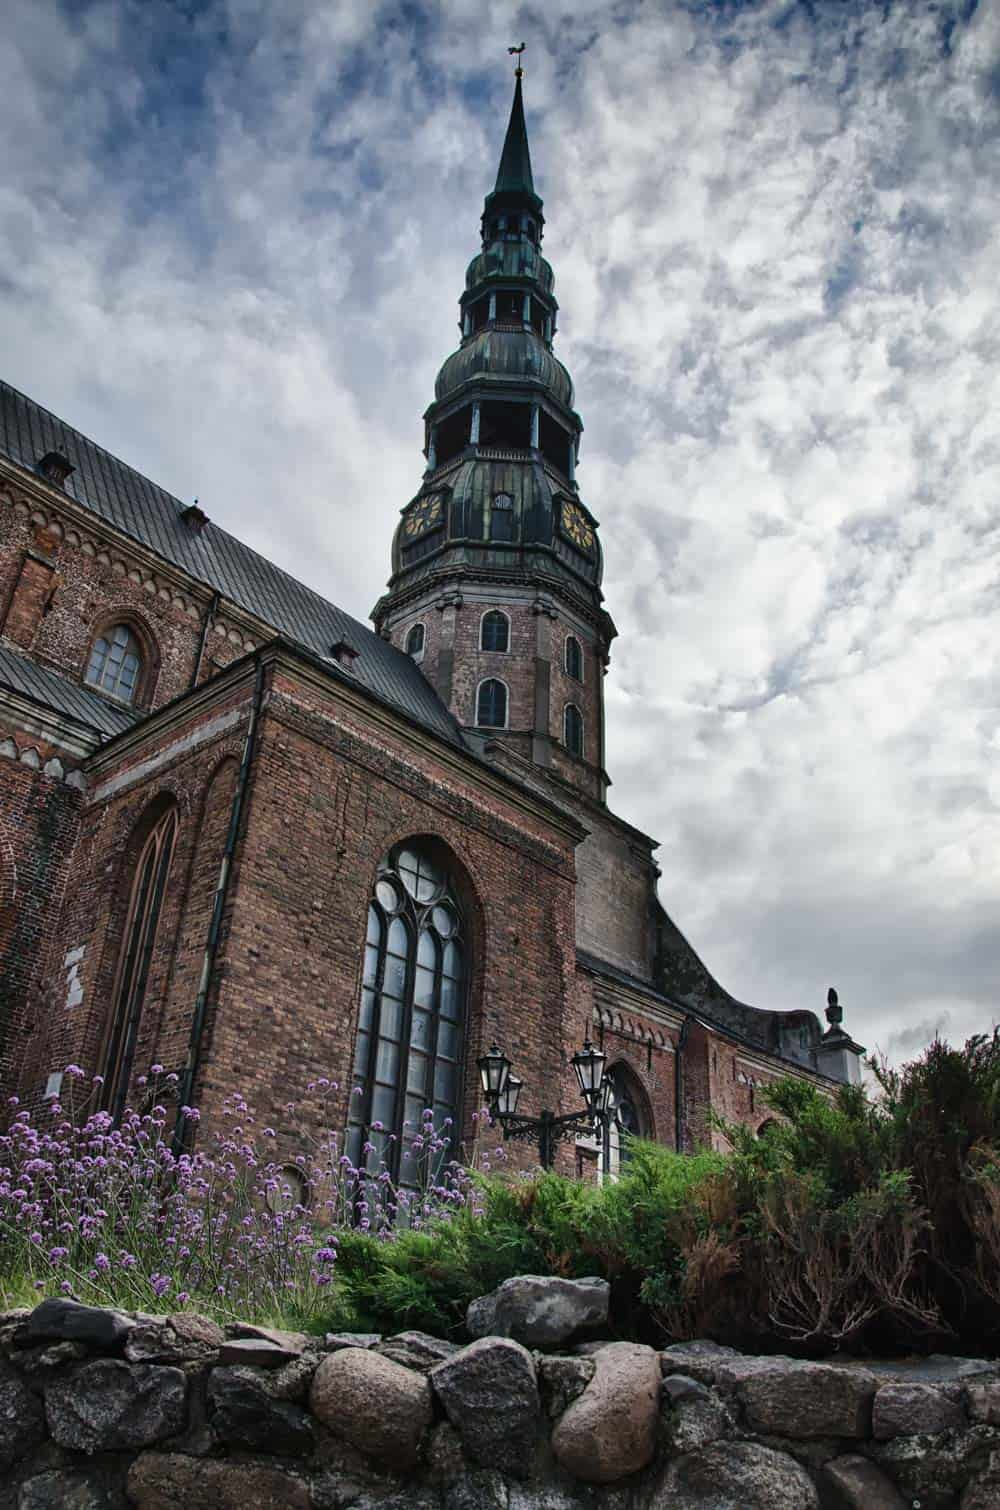 St Peter's Church in Old Town Riga, Latvia